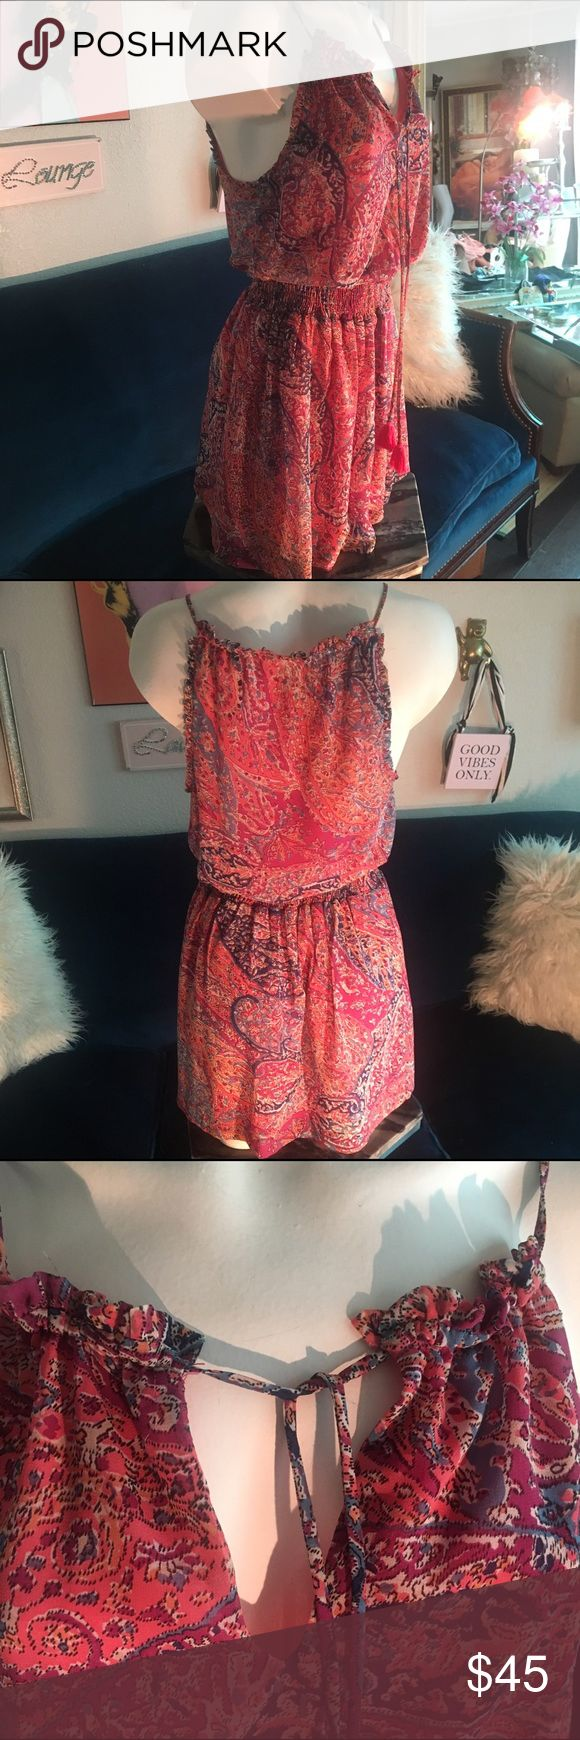 OYSHO Cute dress Pretty, comfortable and stylish, dress fully lined, adjustable tie front, elastic waistband all one piece. New never been worn EXCELLENT Condition Dresses